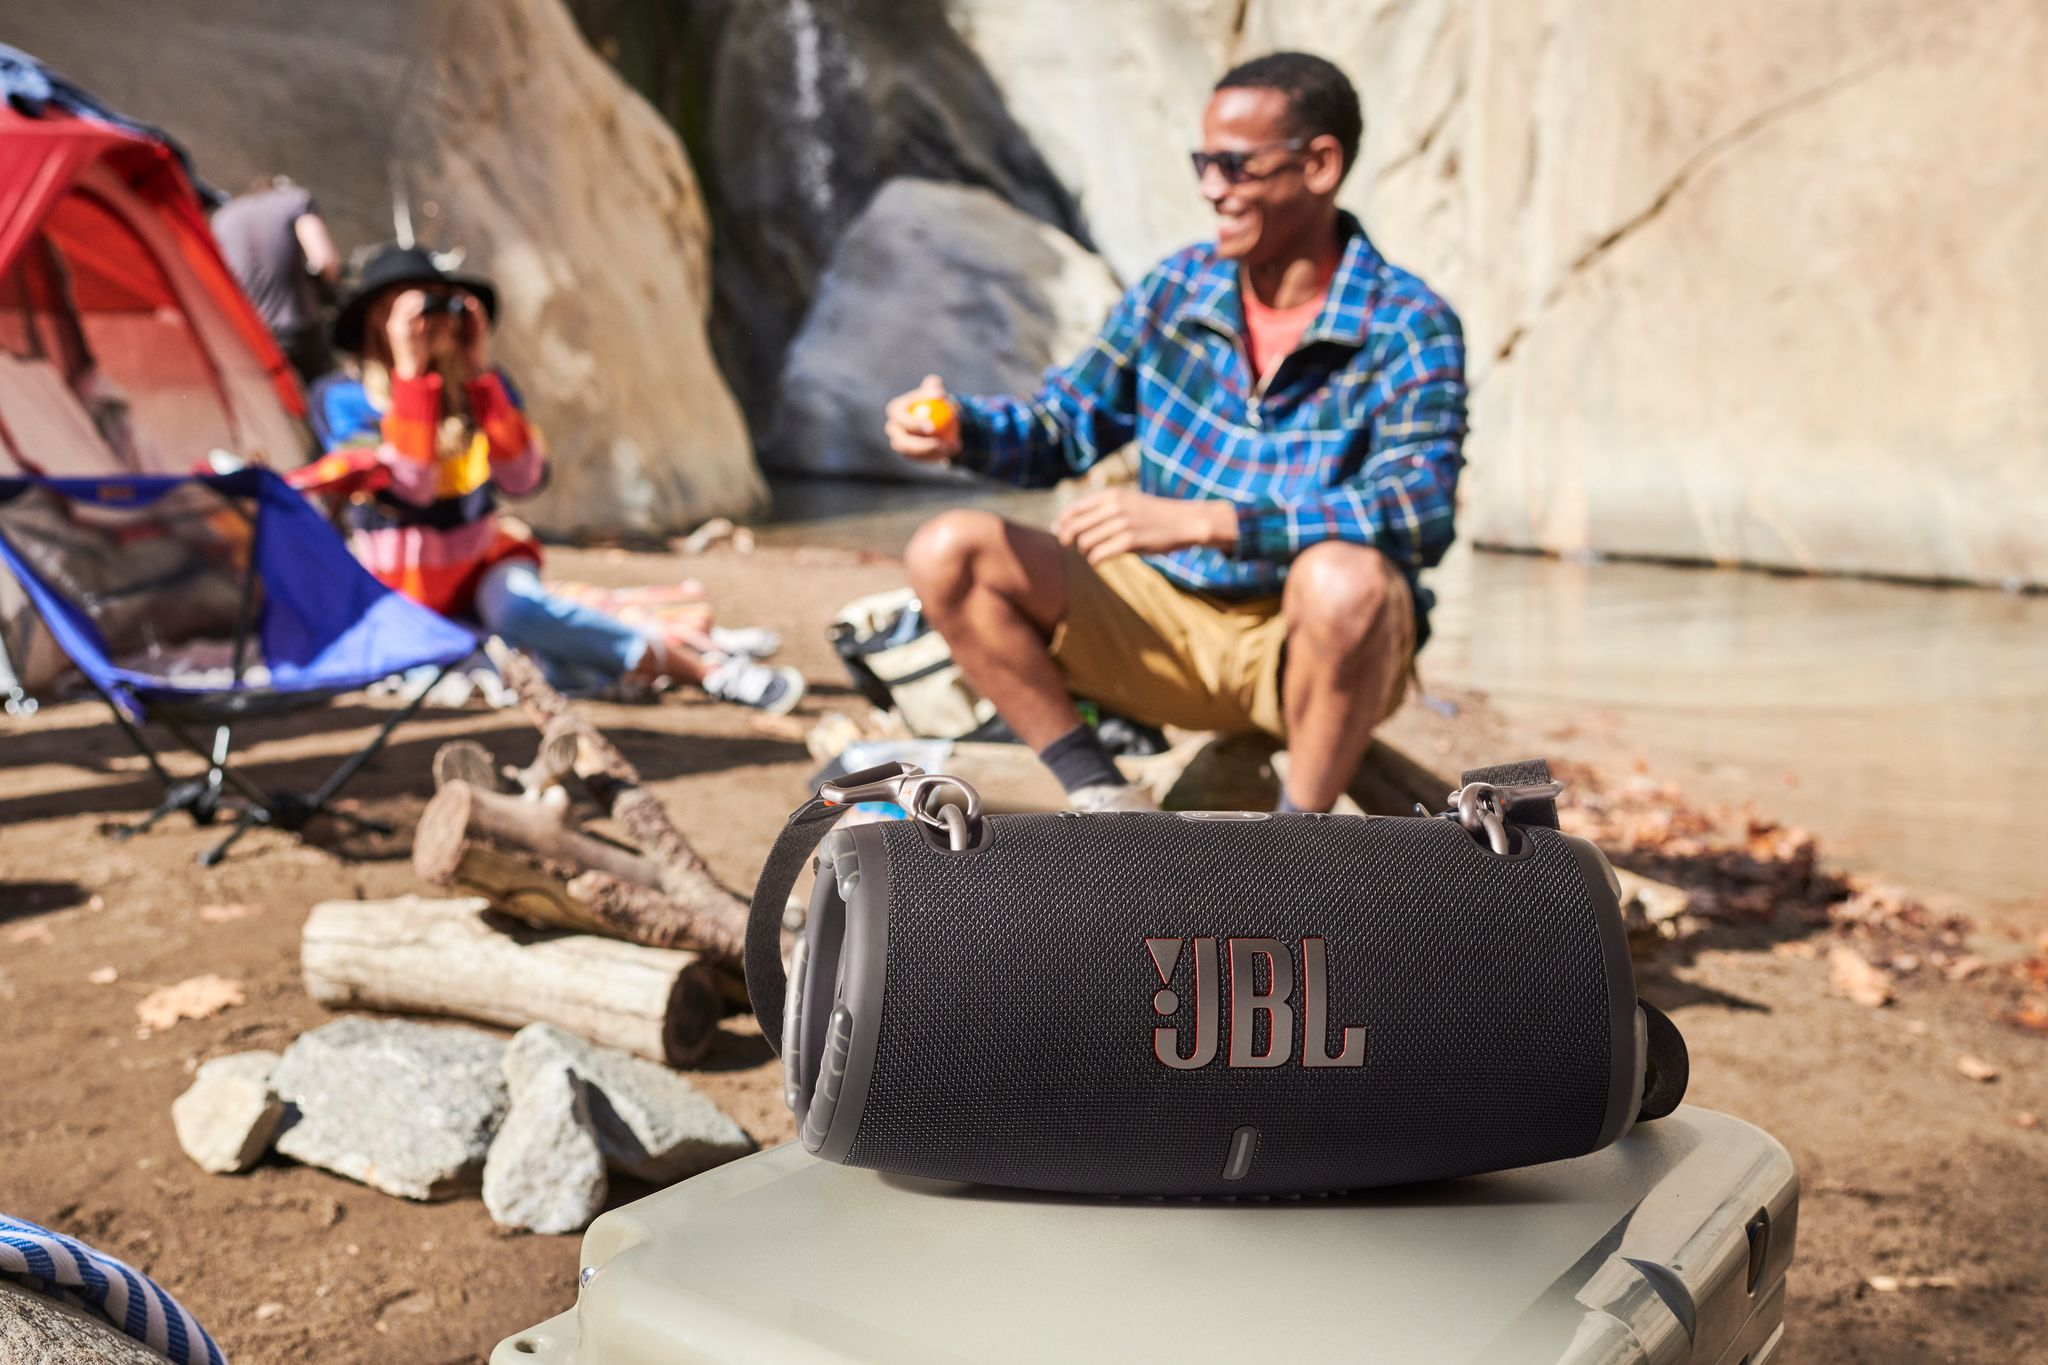 %name REVIEW: JBL Xtreme 3 Speaker, Serious About Partying